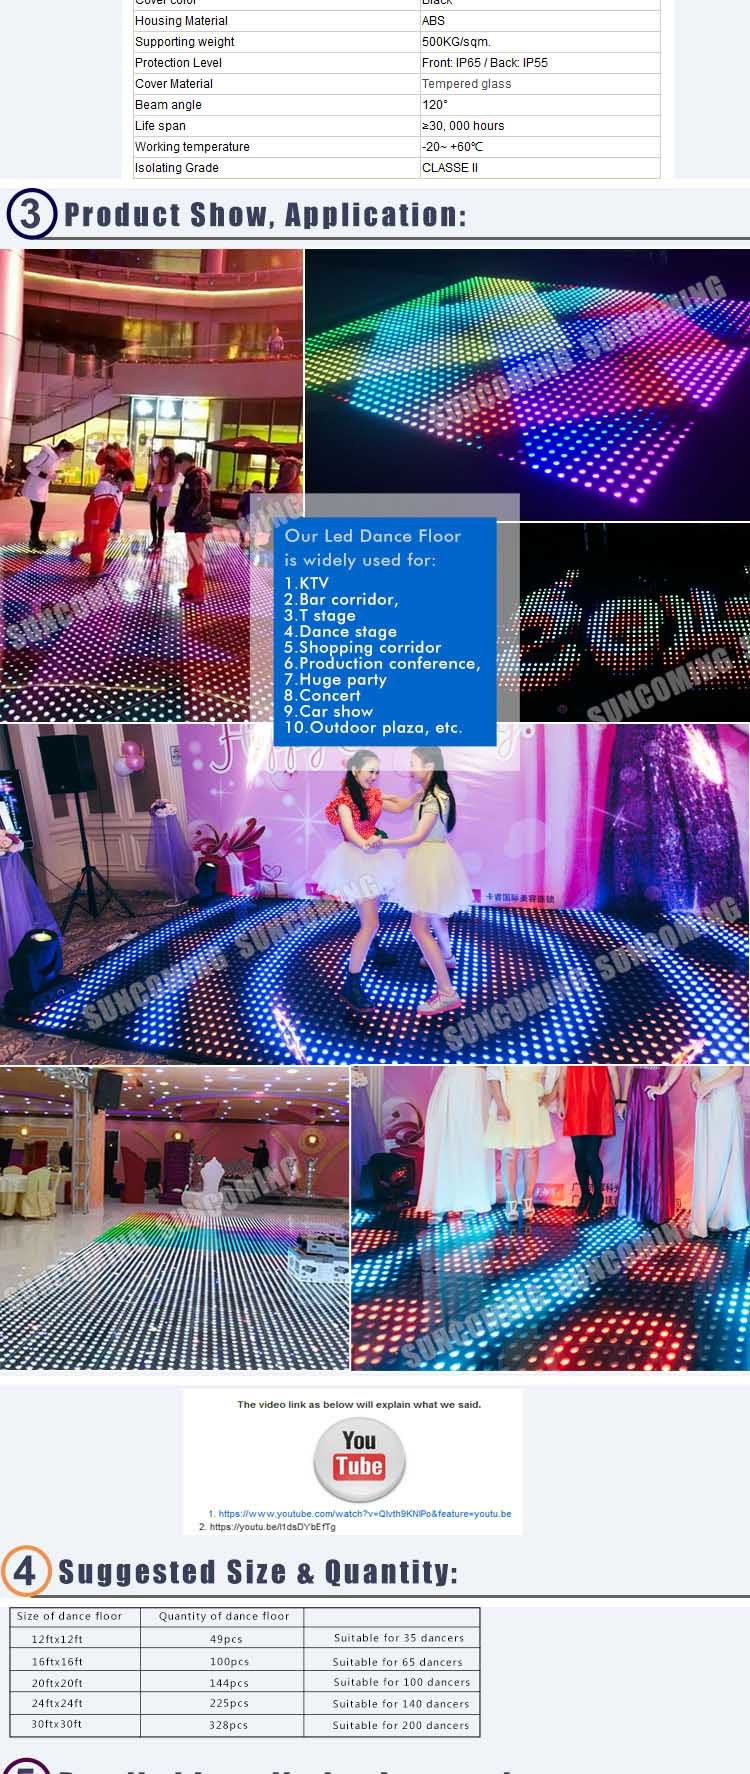 Super bright disco led dance floor panel china led dance floor to fix the dance floors both easy install and disassemble no need of professional workers or even hiring a labor you can do it by yourself solutioingenieria Images